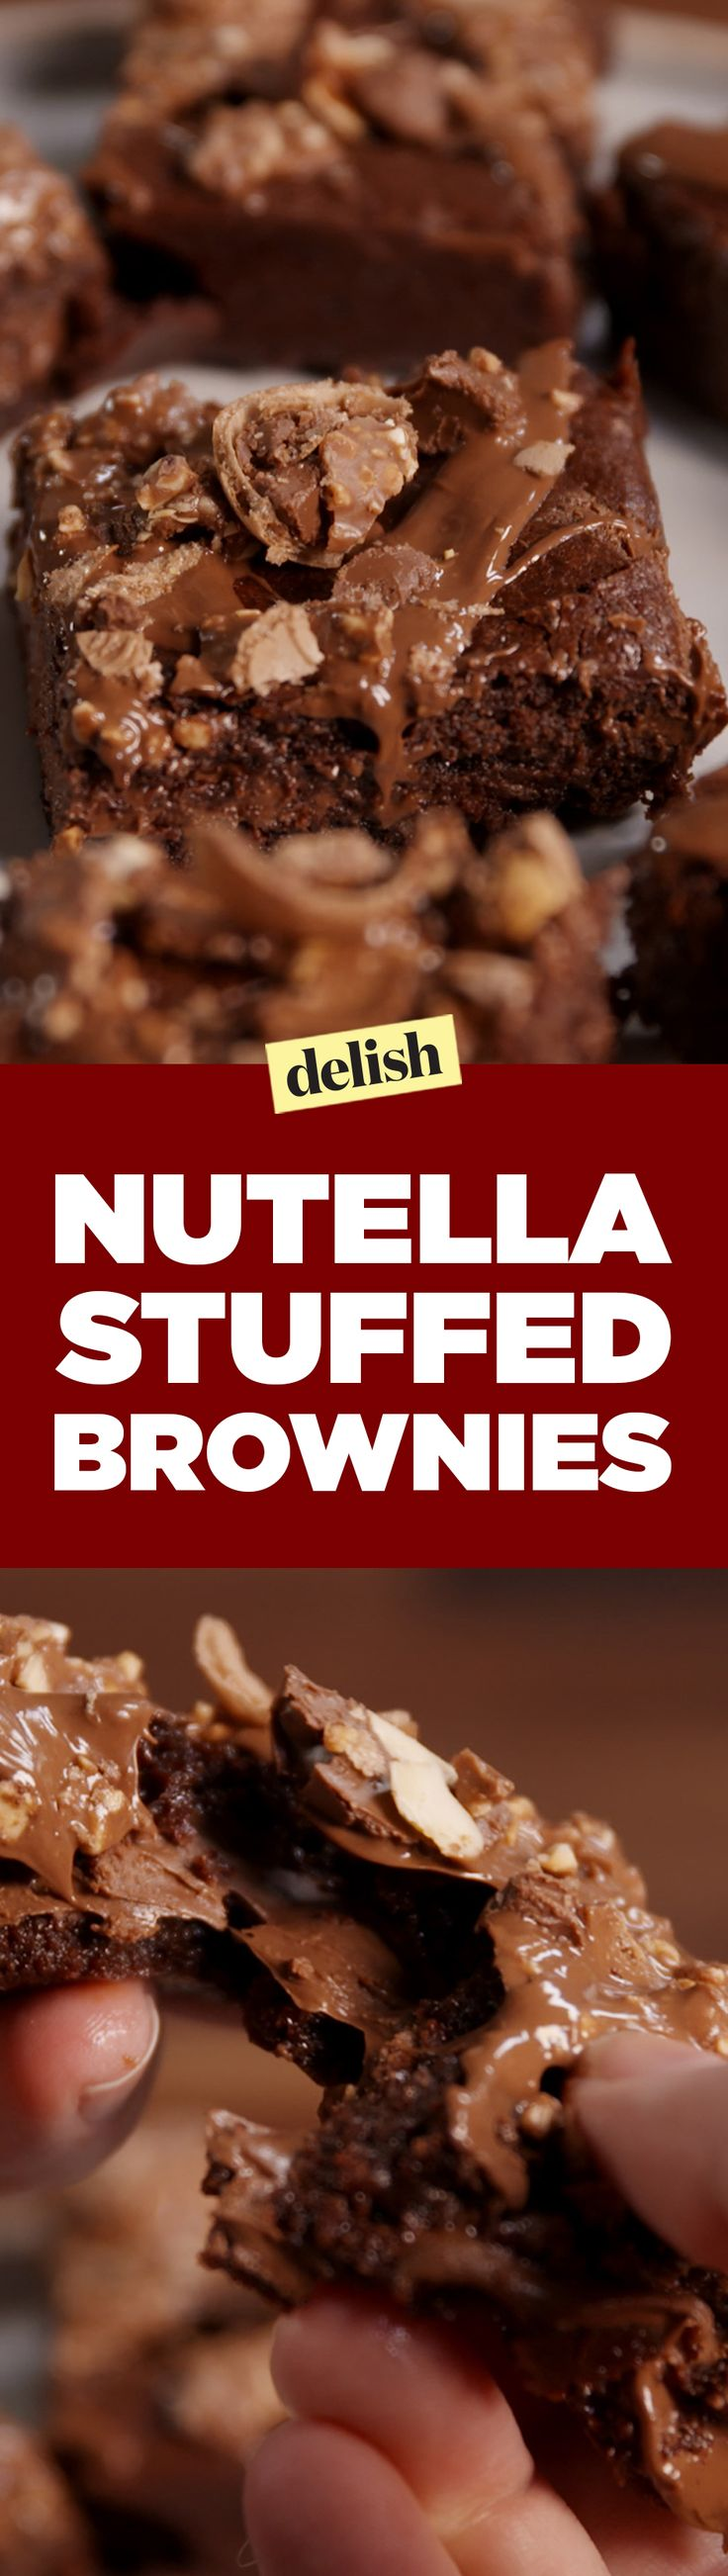 These Nutella-stuffed brownies will get you chocolate wasted. Get the recipe on Delish.com.